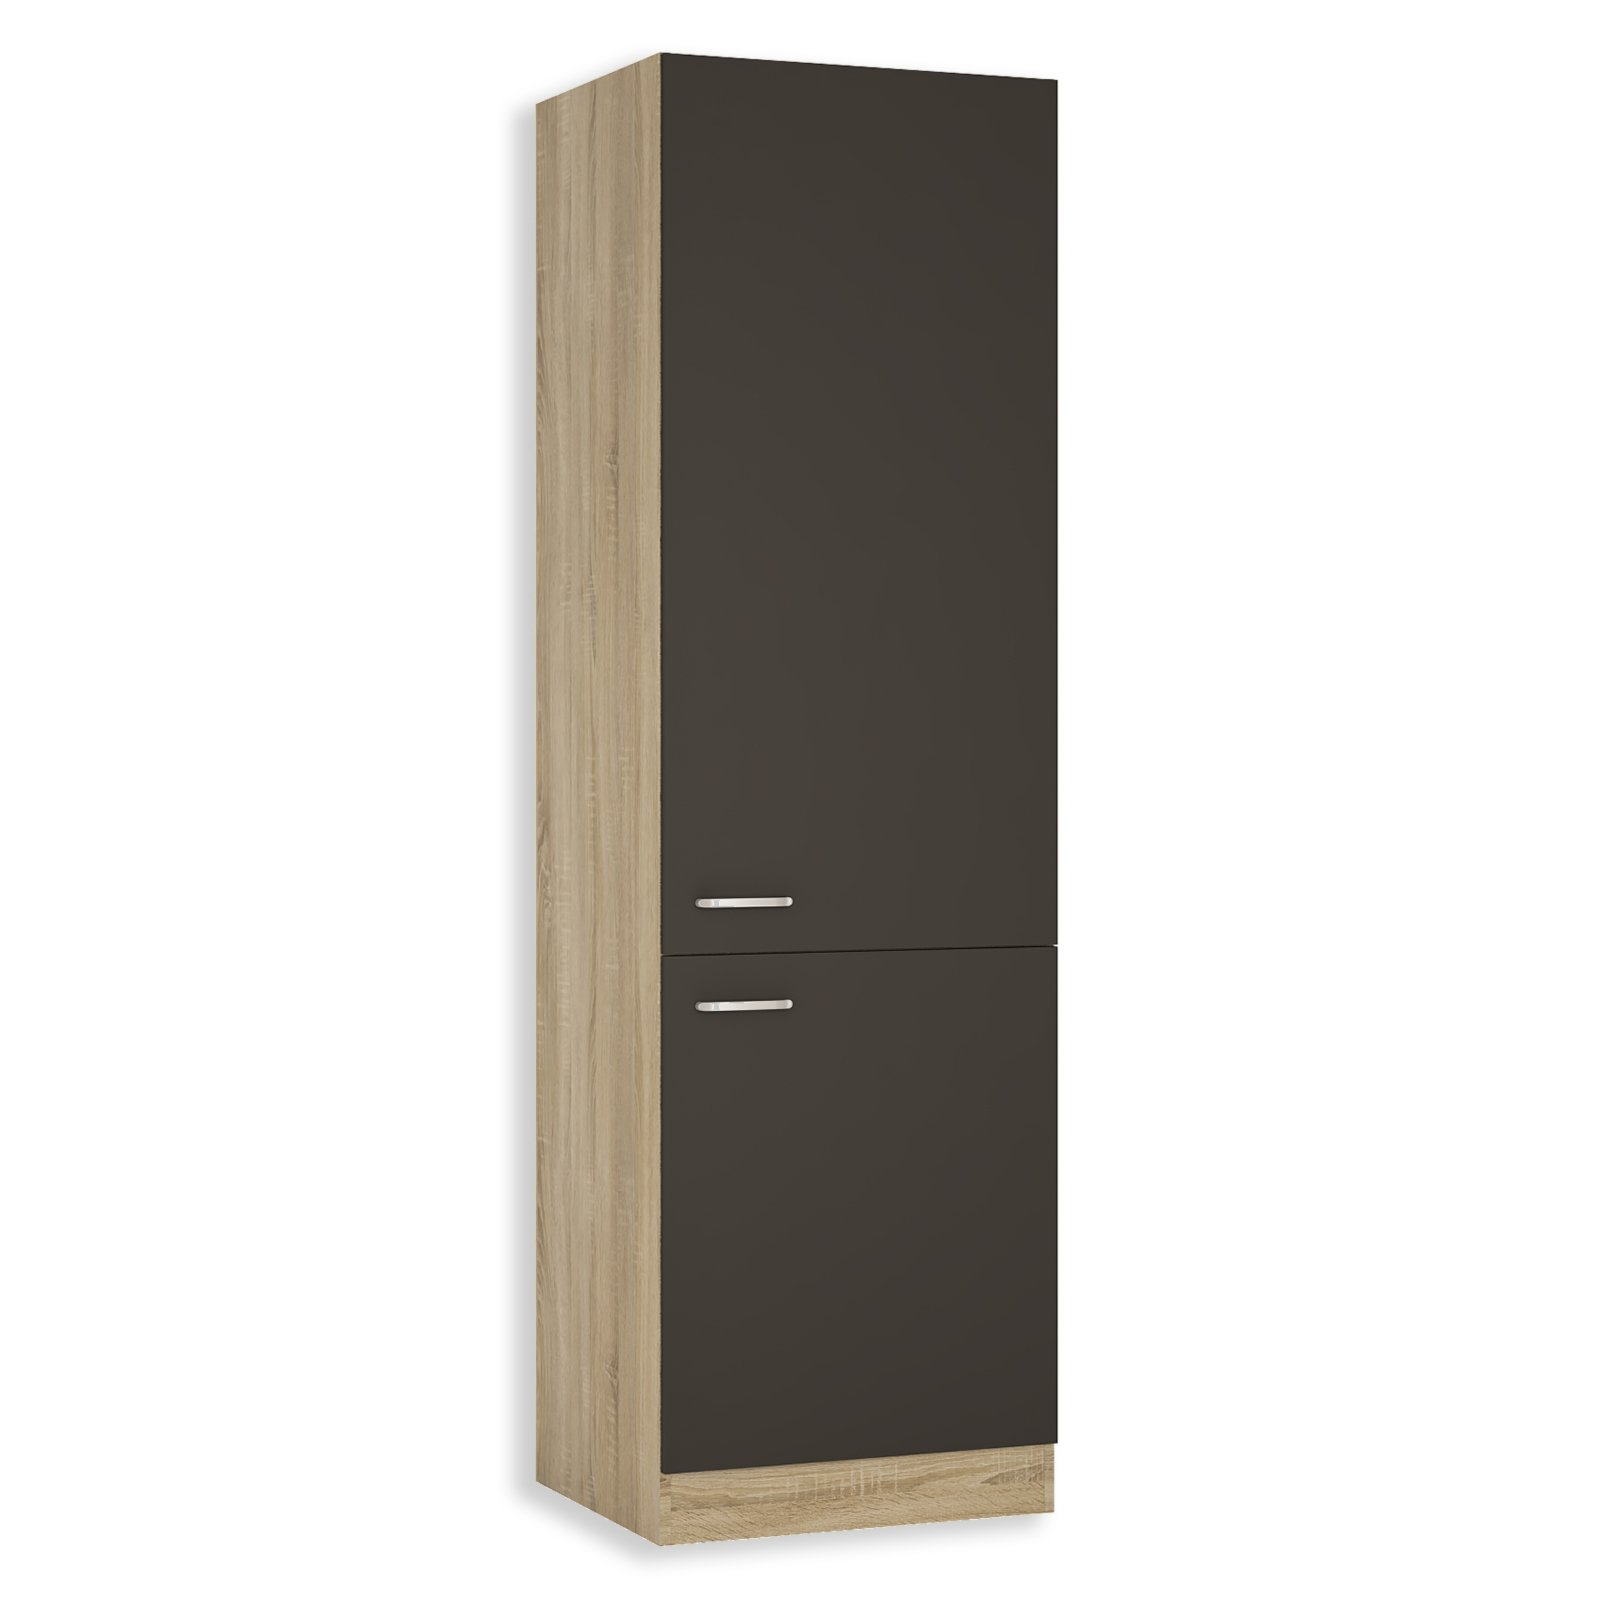 hochschrank fox anthrazit sonoma eiche 60 cm breit hochschr nke einzelschr nke. Black Bedroom Furniture Sets. Home Design Ideas